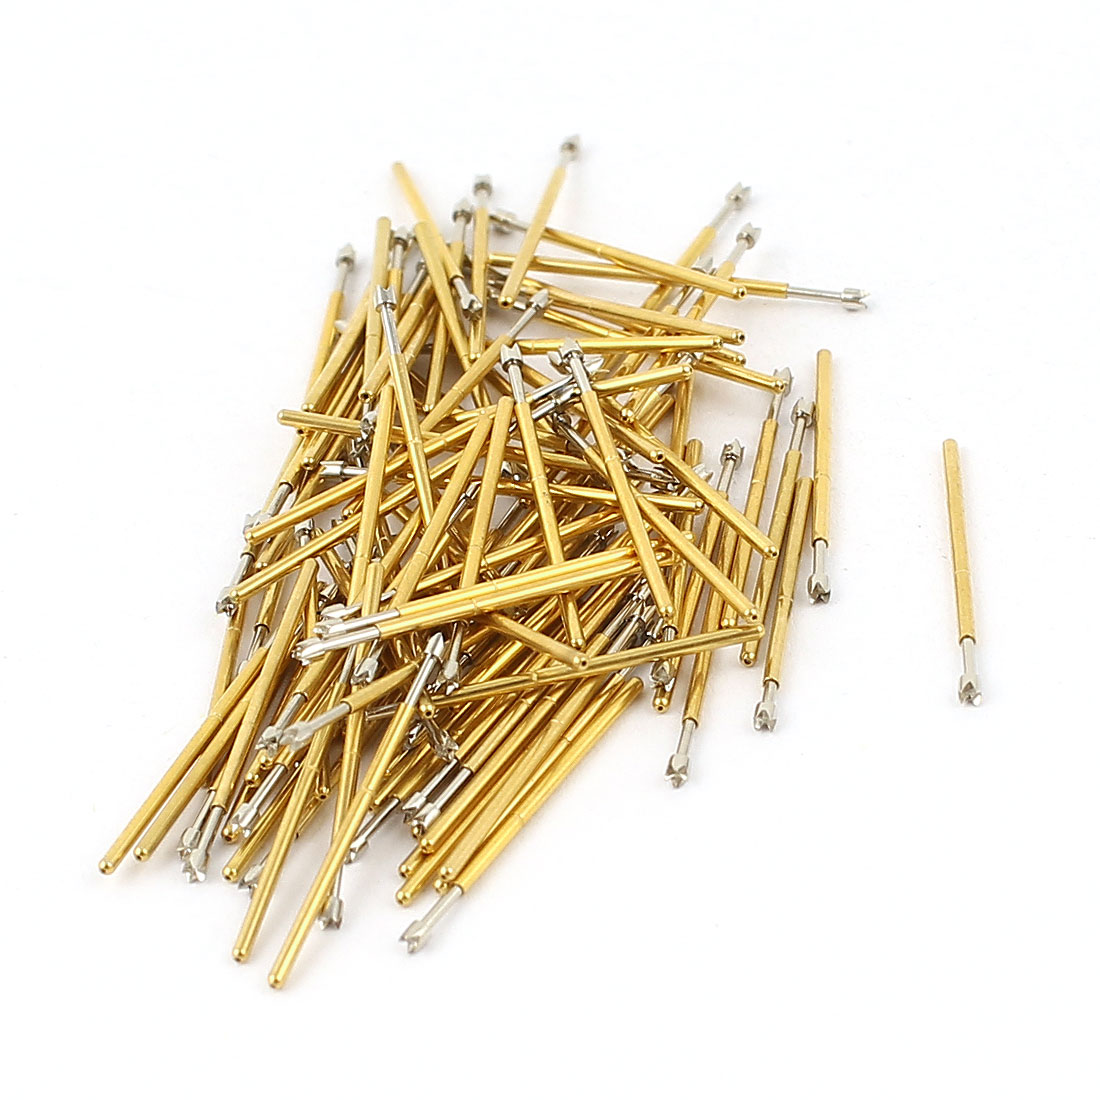 100 Pcs P50-Q2 0.9mm 4-Point Crown Tip Spring Testing Probes Pin